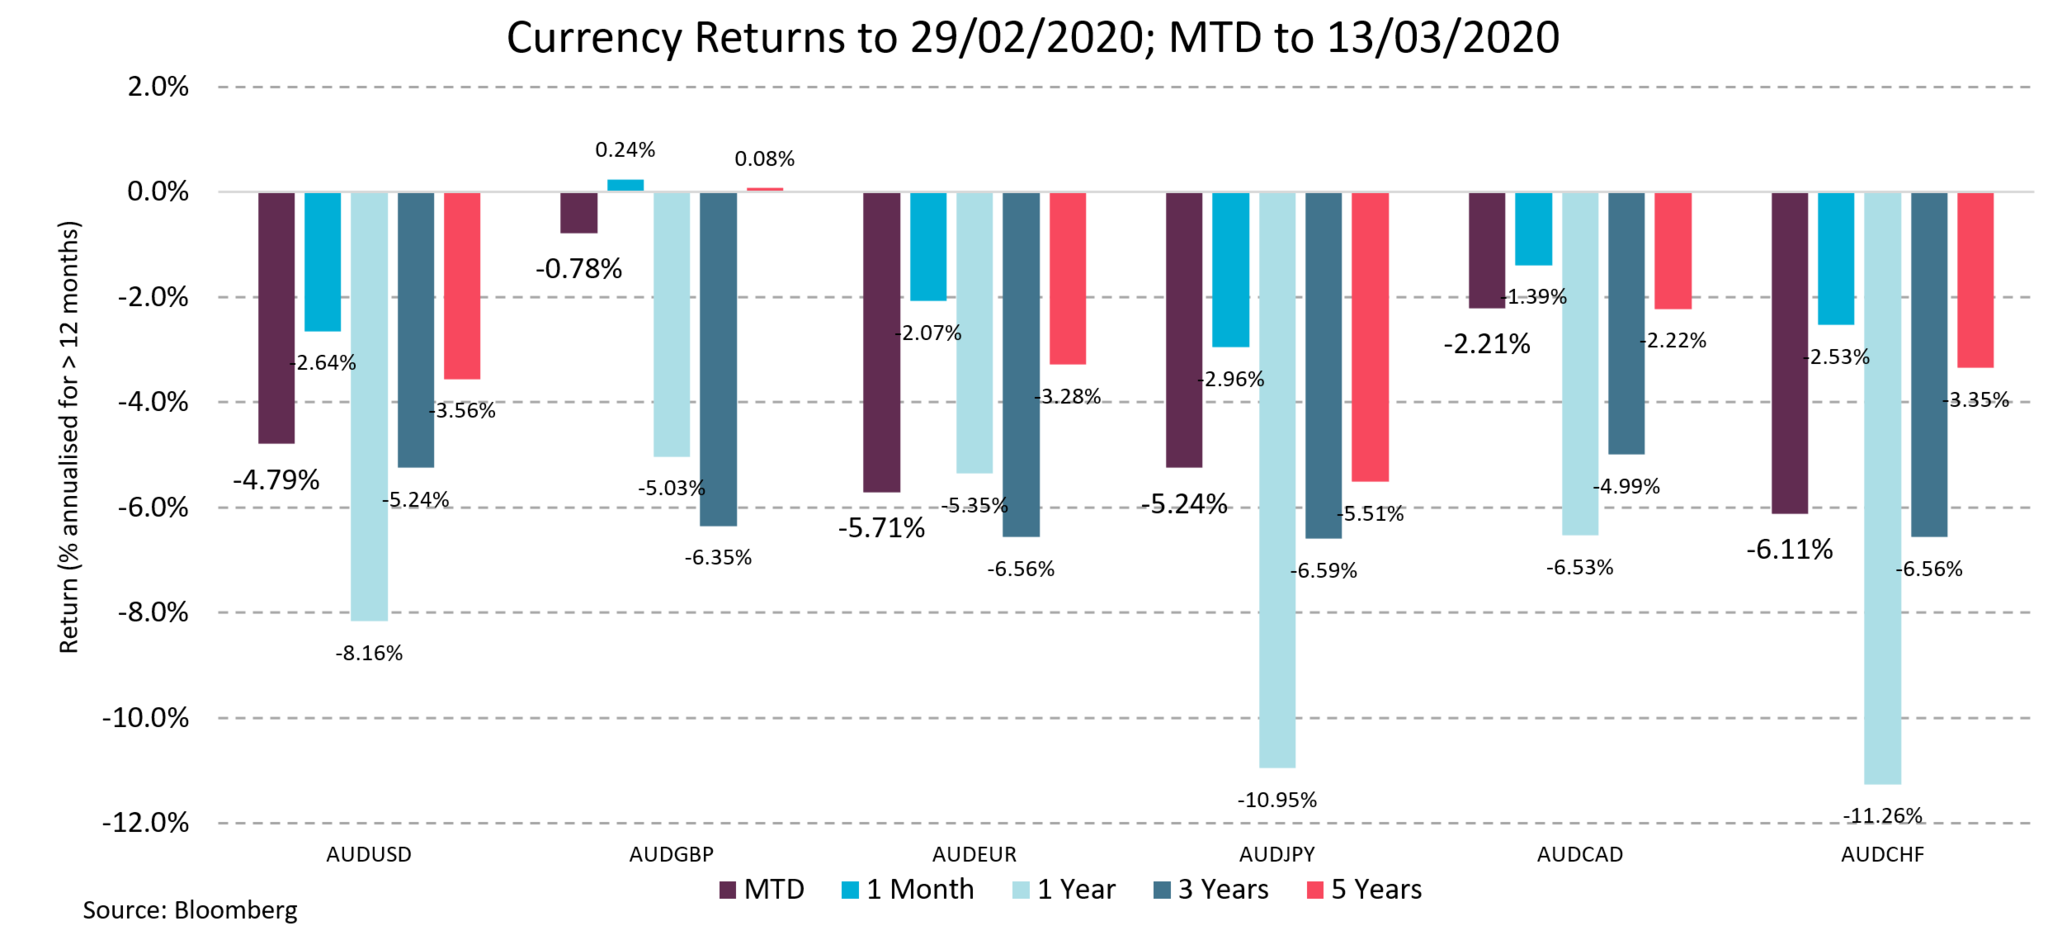 This chart shows the degree of deprecation of the Australian Dollar against major currencies. Between 29 February and 13 March 2020, the Australian Dollar has depreciated in a range between -4.79 to -6.11% against these key major currencies.